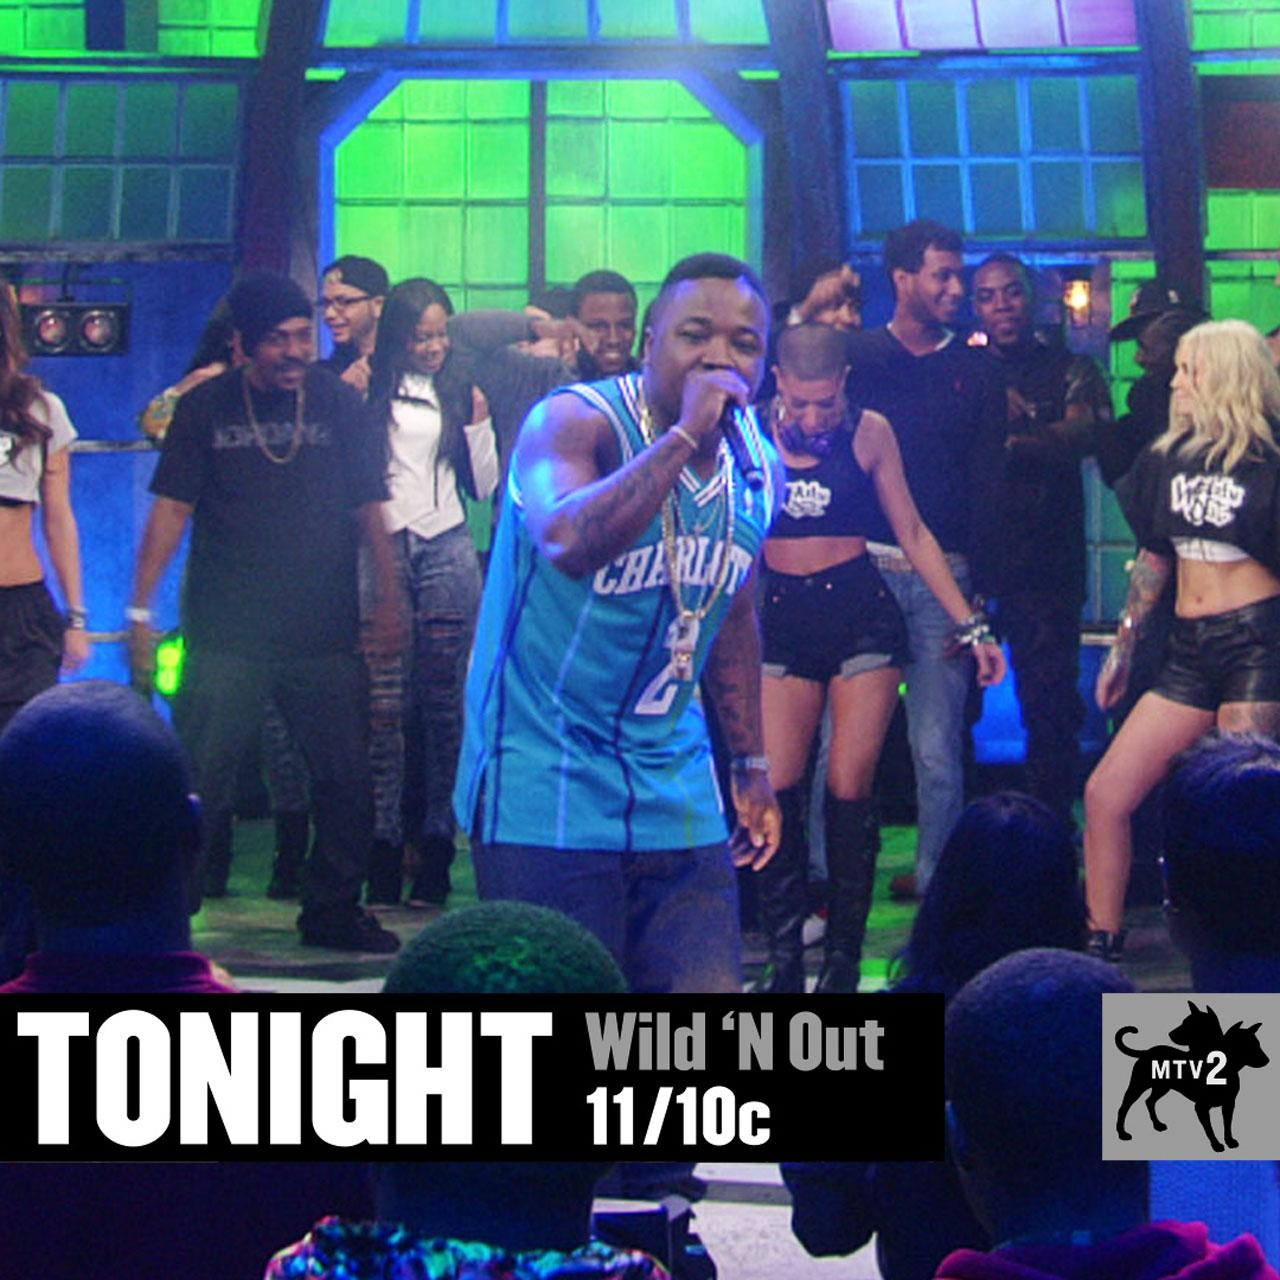 Tonight on #WildNOut! @AsherRoth, Lady Boss @DritaDavanzo, and @TroyAve. Tune-in at 11/10c on @MTV2 and #WTFO http://t.co/xLowoh5zAv